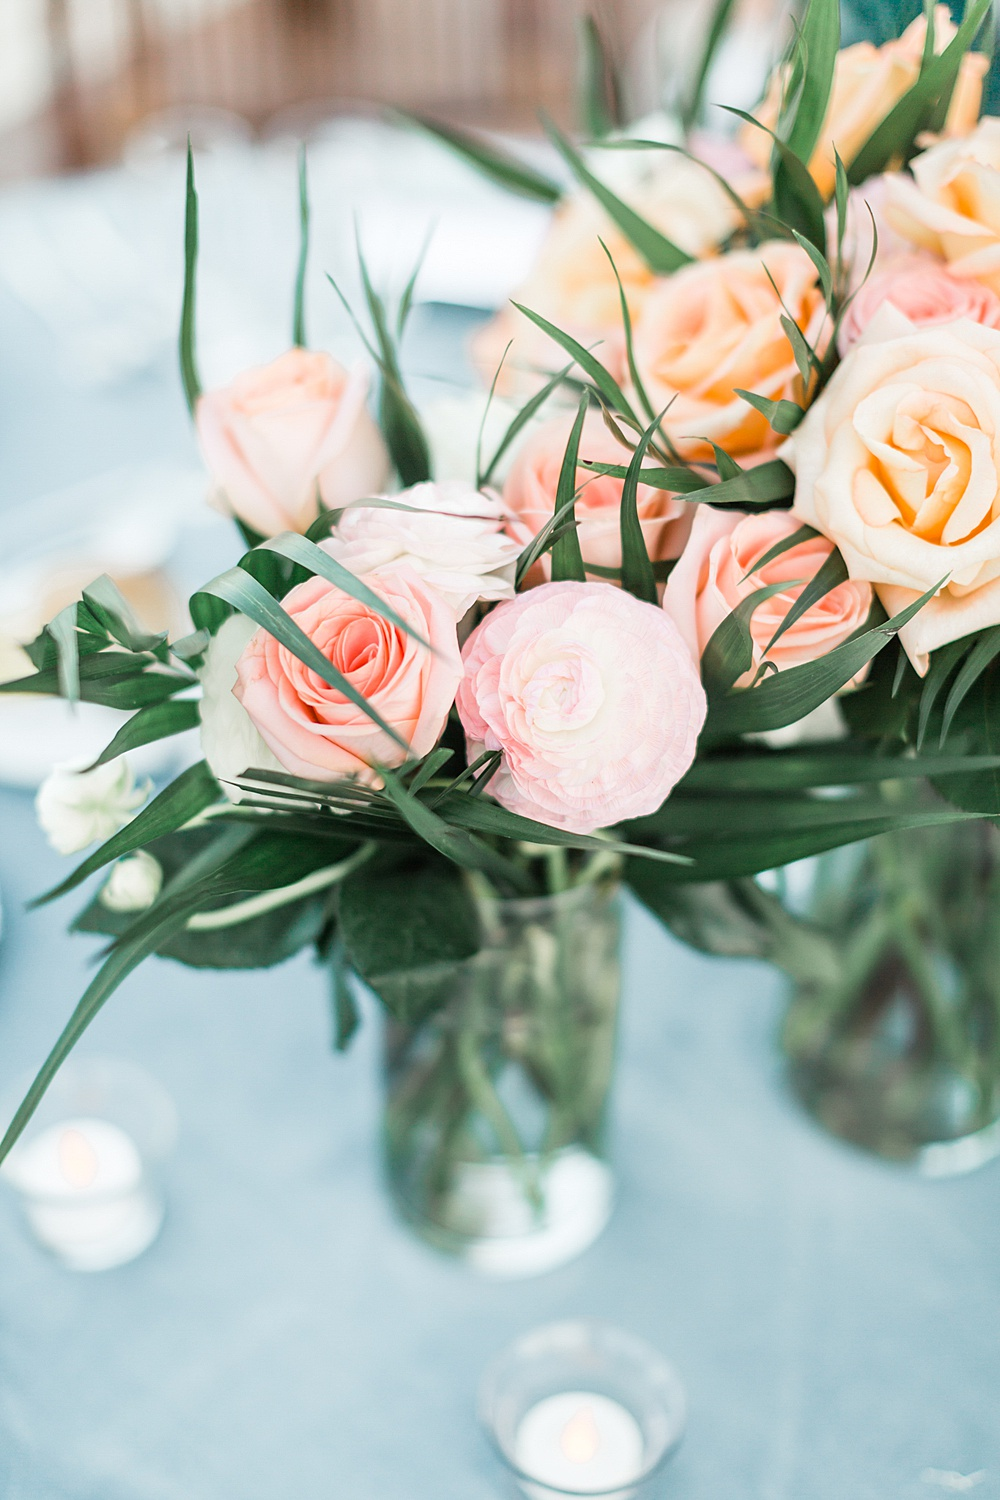 Peach and Pink Rose Wedding Centerpiece